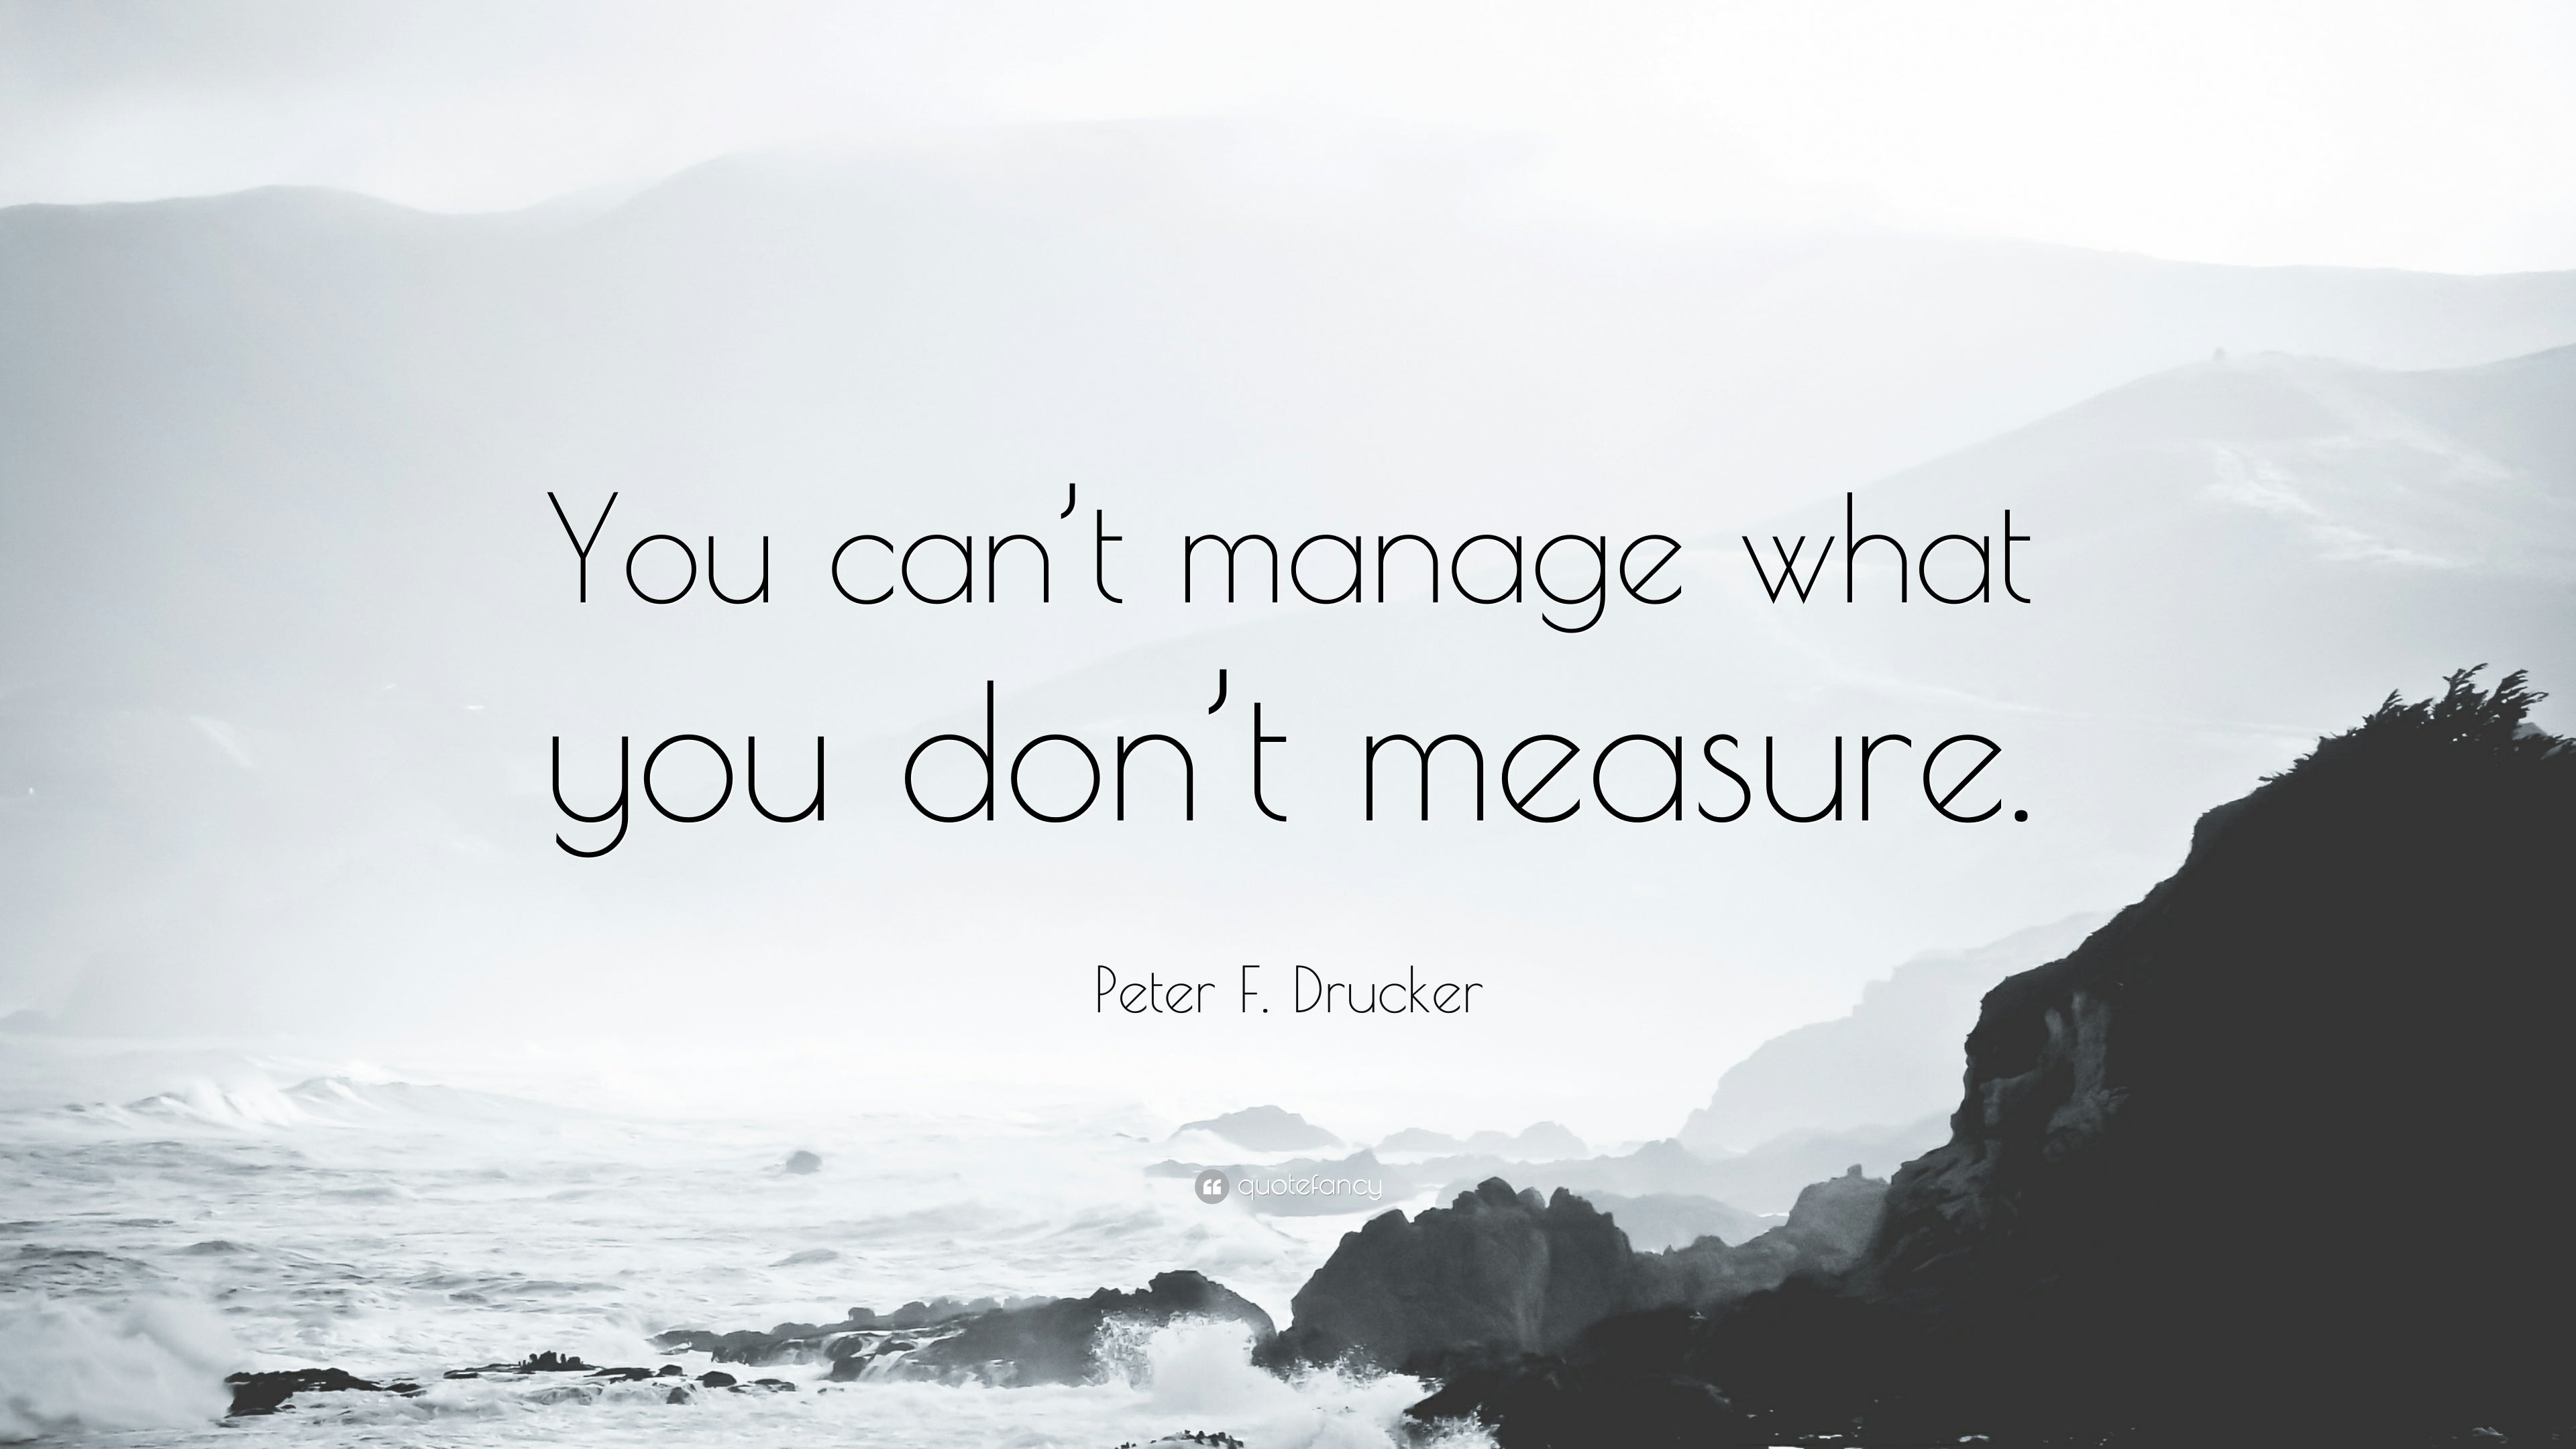 Peter-Drucker-Quote-You-can-t-manage-what-you-don-t-measure